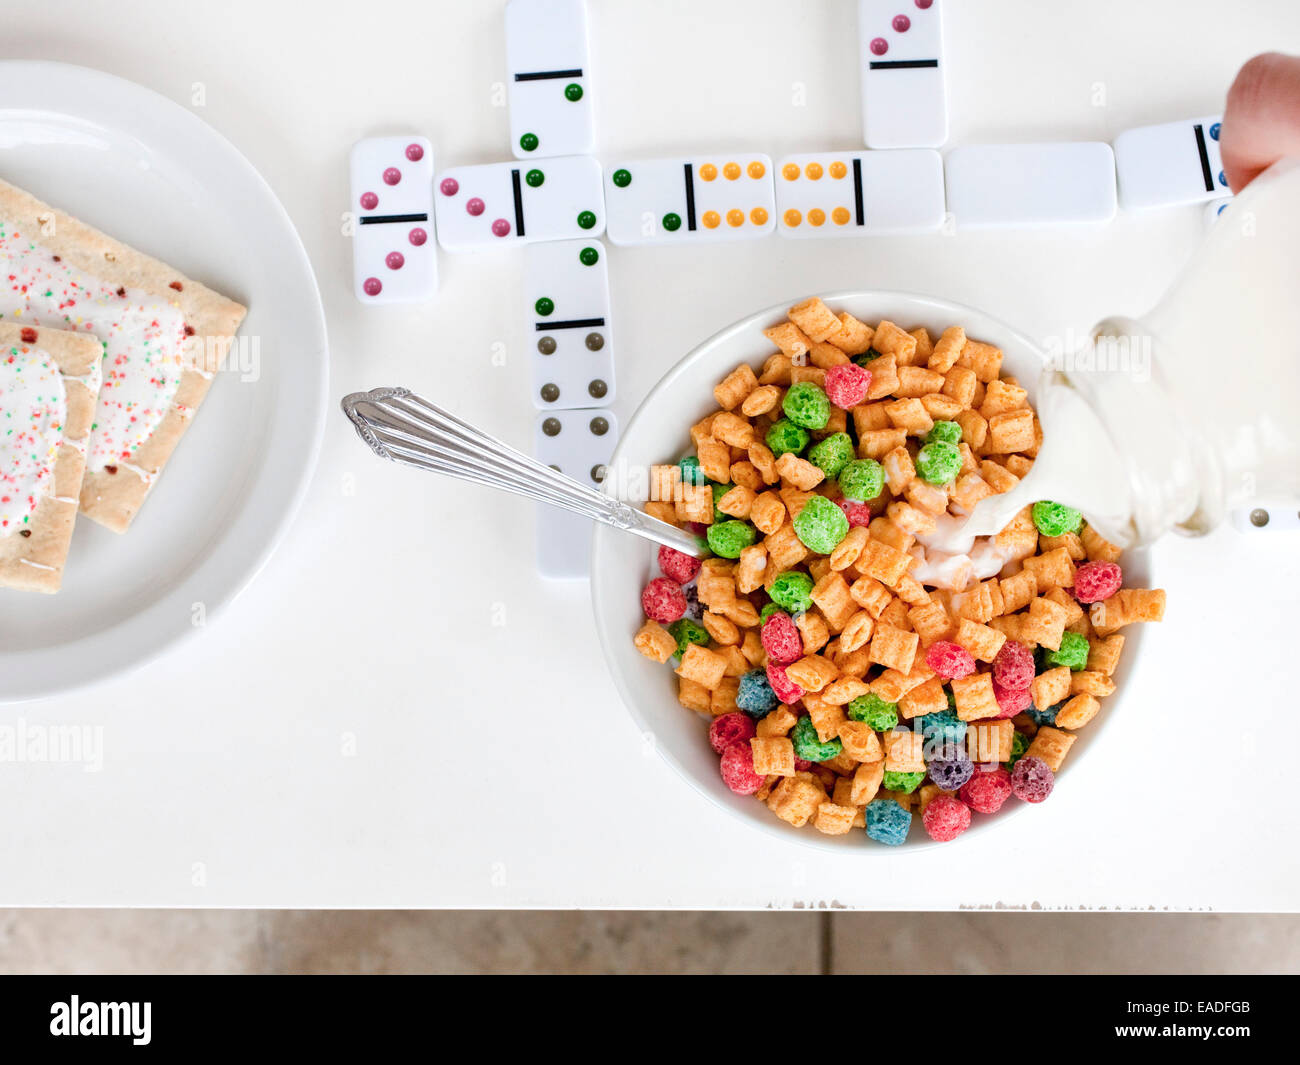 pouring milk on breakfast cereal - Stock Image